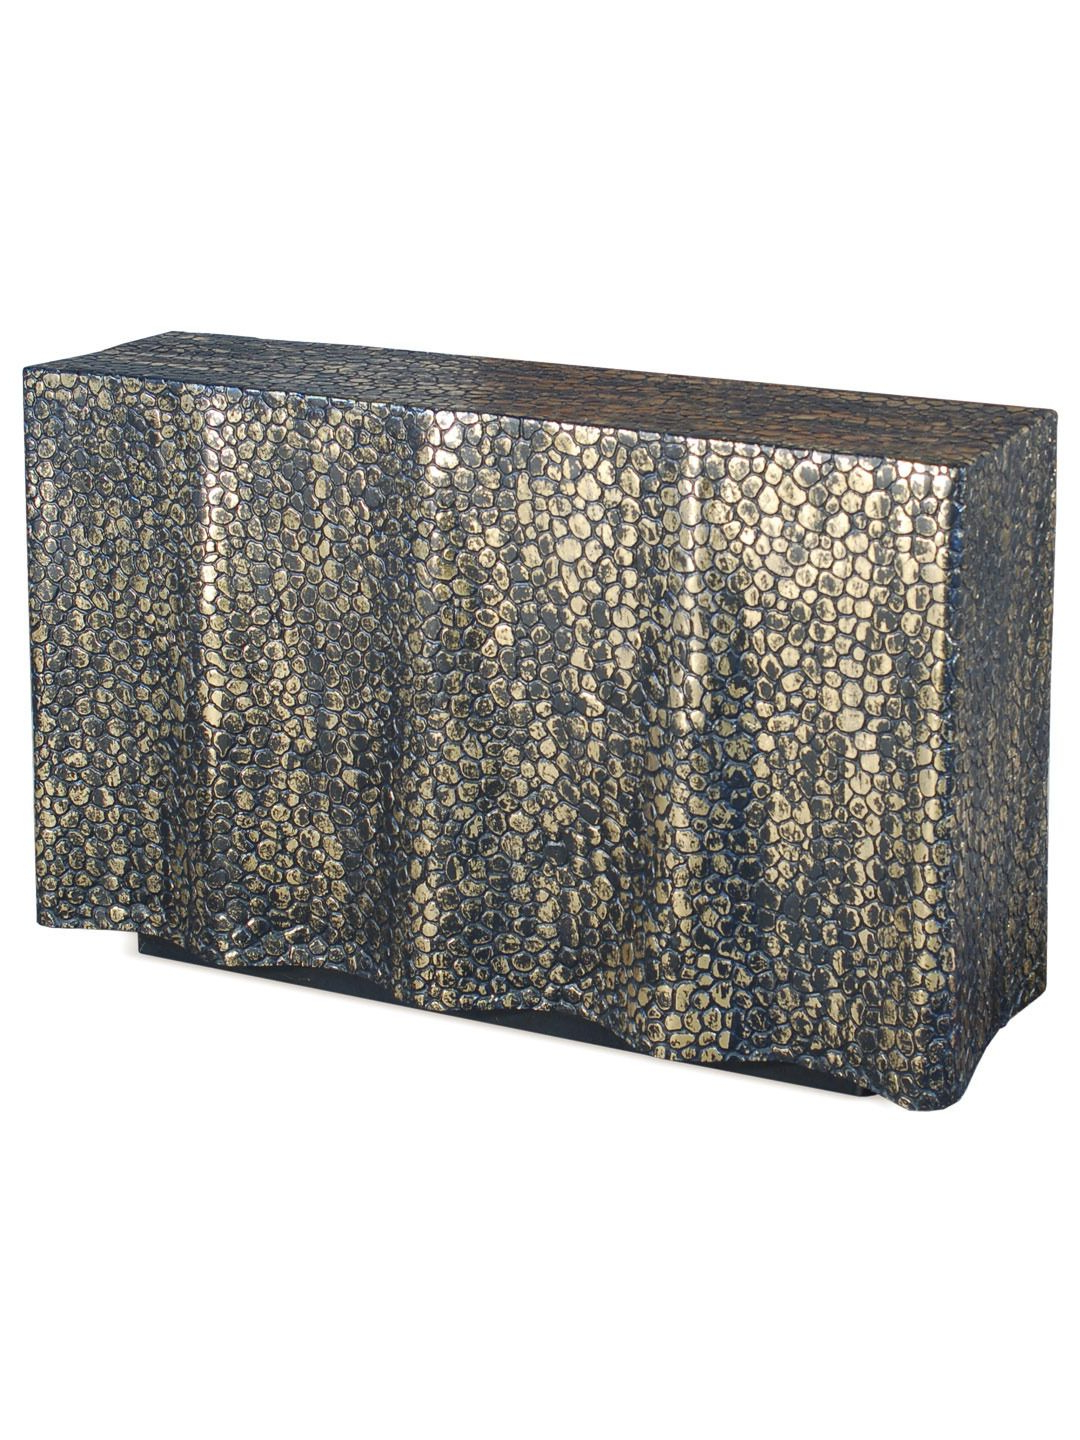 Curtain Console Tablephillips Collection At Gilt | Tables Inside Phillip Brass Console Tables (View 10 of 20)